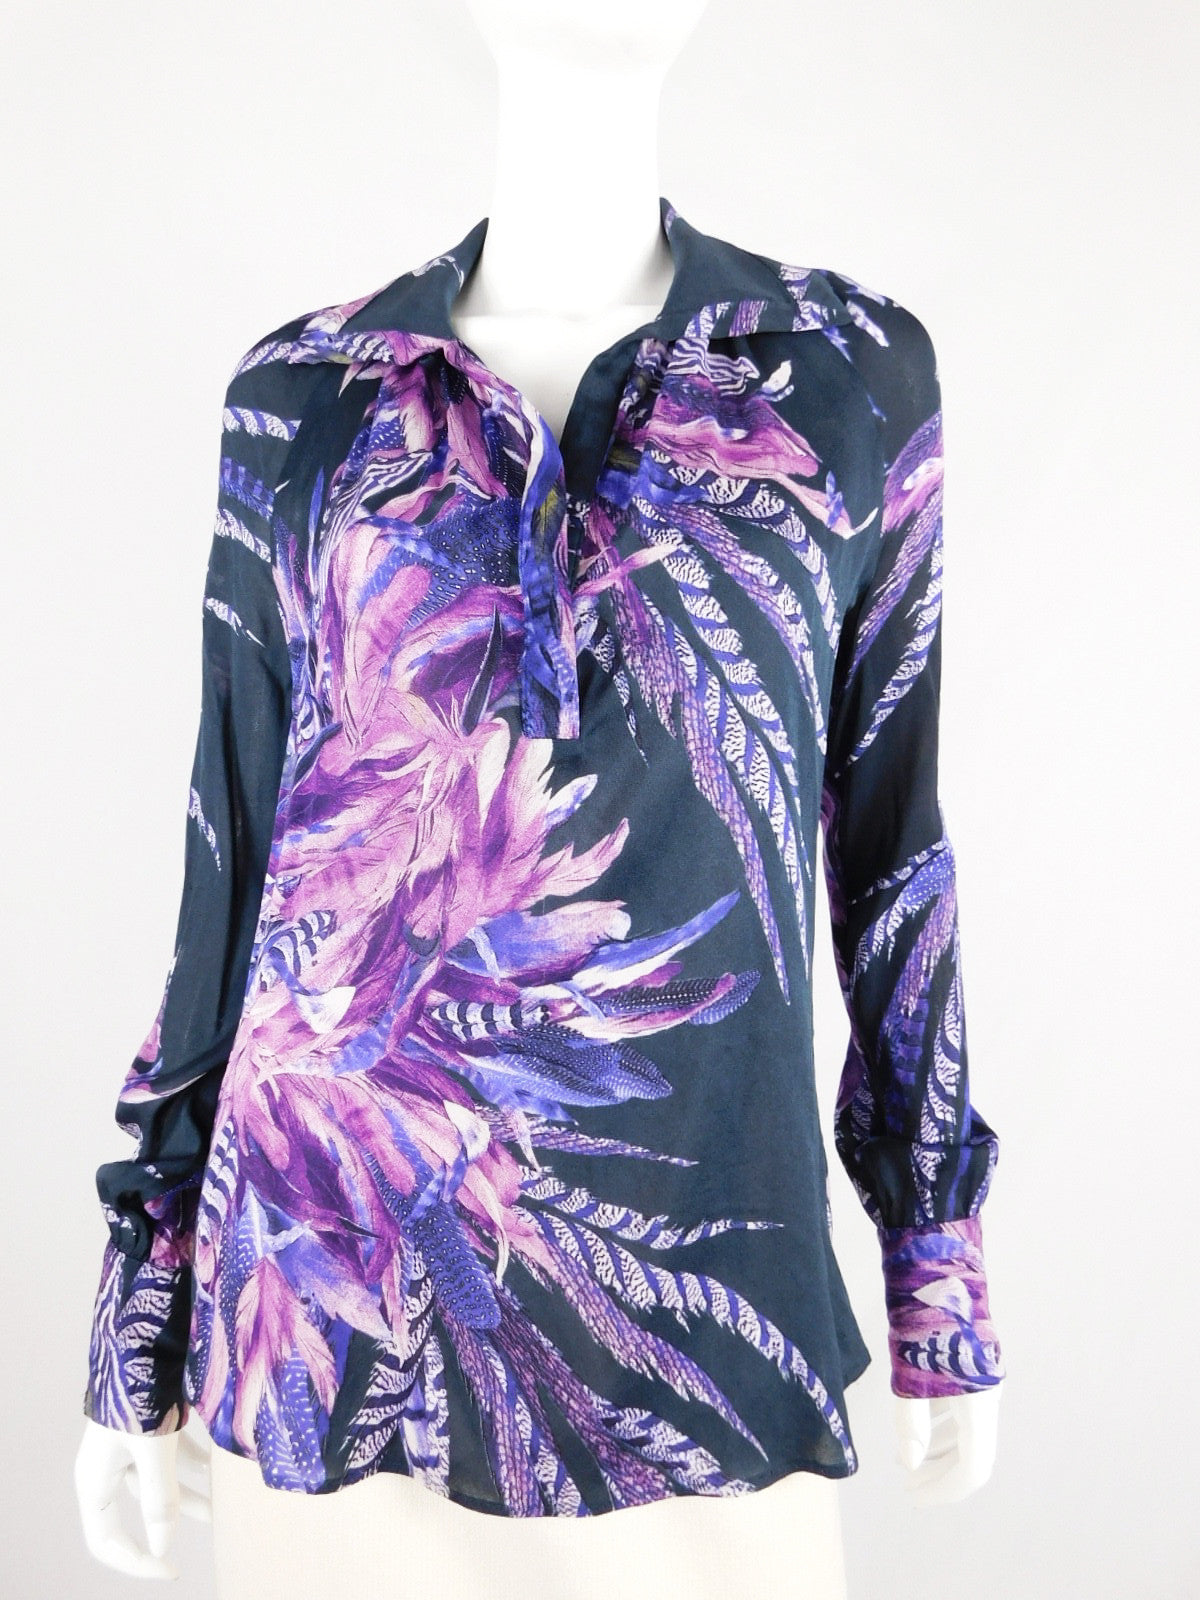 Just Cavalli Purple Silk Floral Print Sheer Blouse, Size 44/ US 8